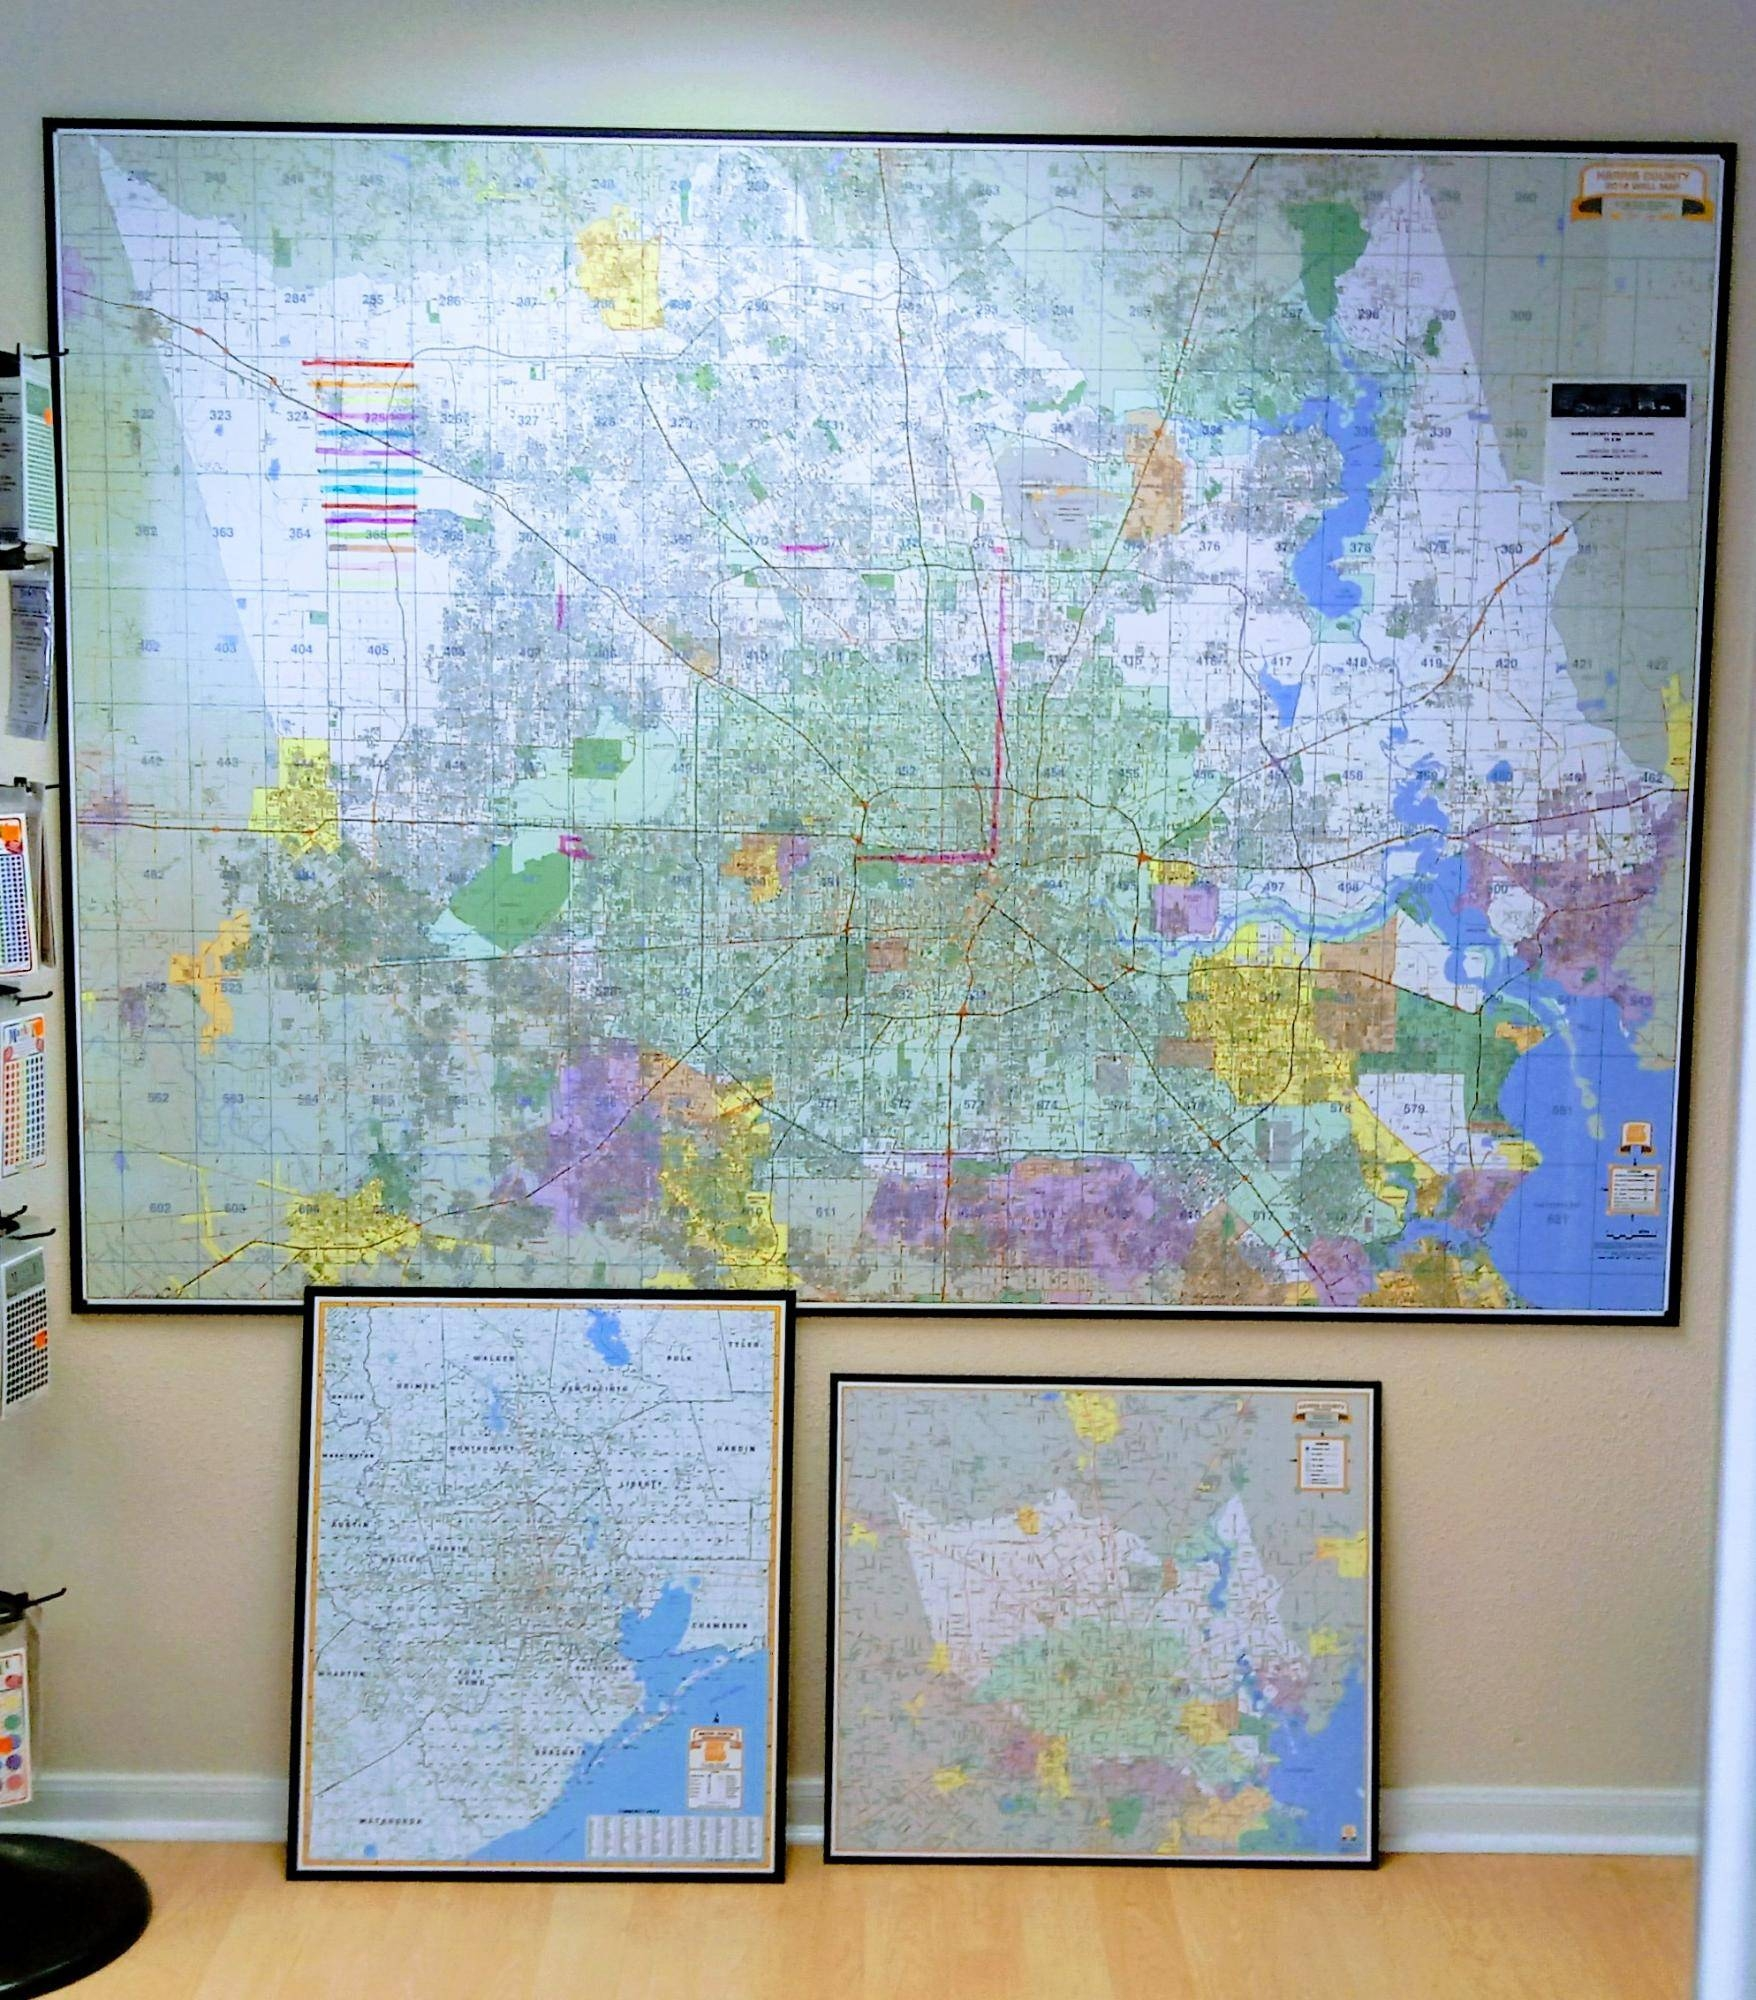 Houston Maps, Globes, Gis, Key Map Atlases Throughout Recent Houston Map Wall Art (View 10 of 20)